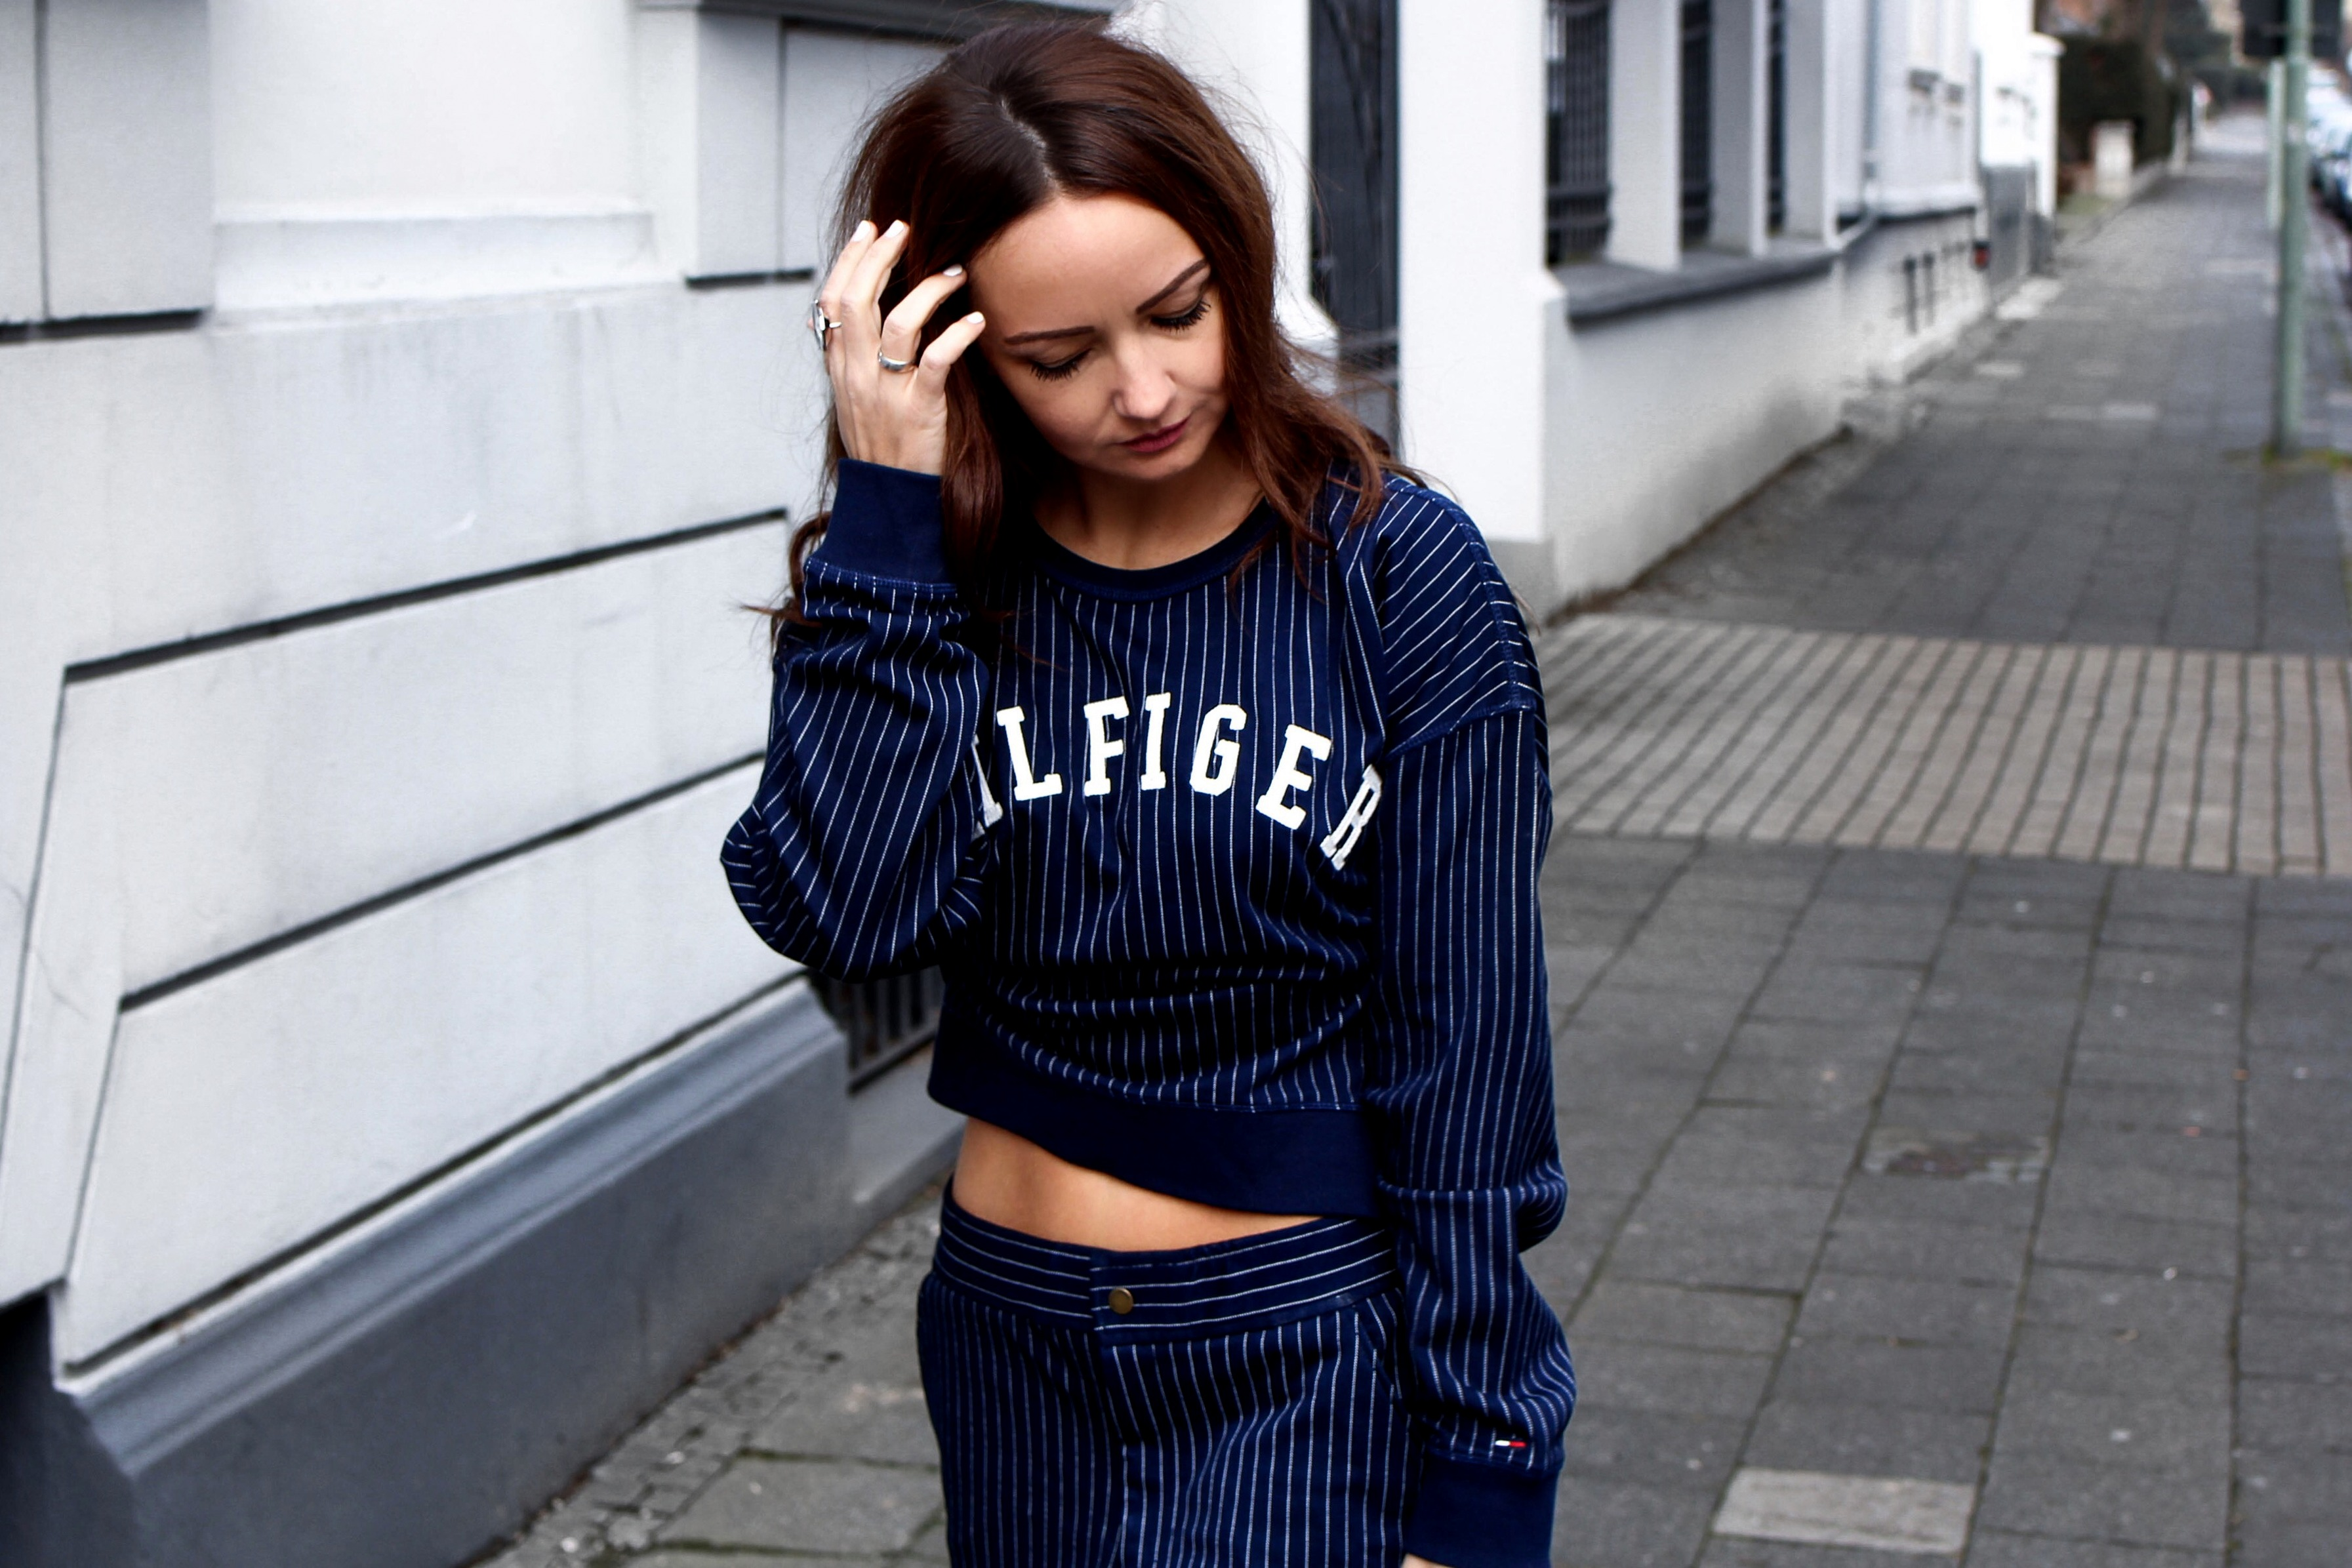 Fashioncircuz by Jenny tommy-hilfiger-blogger-look OUTFIT   HILFIGER JOGGINGHOSE & STATEMENT PULLI MEETS HIGH HEELS